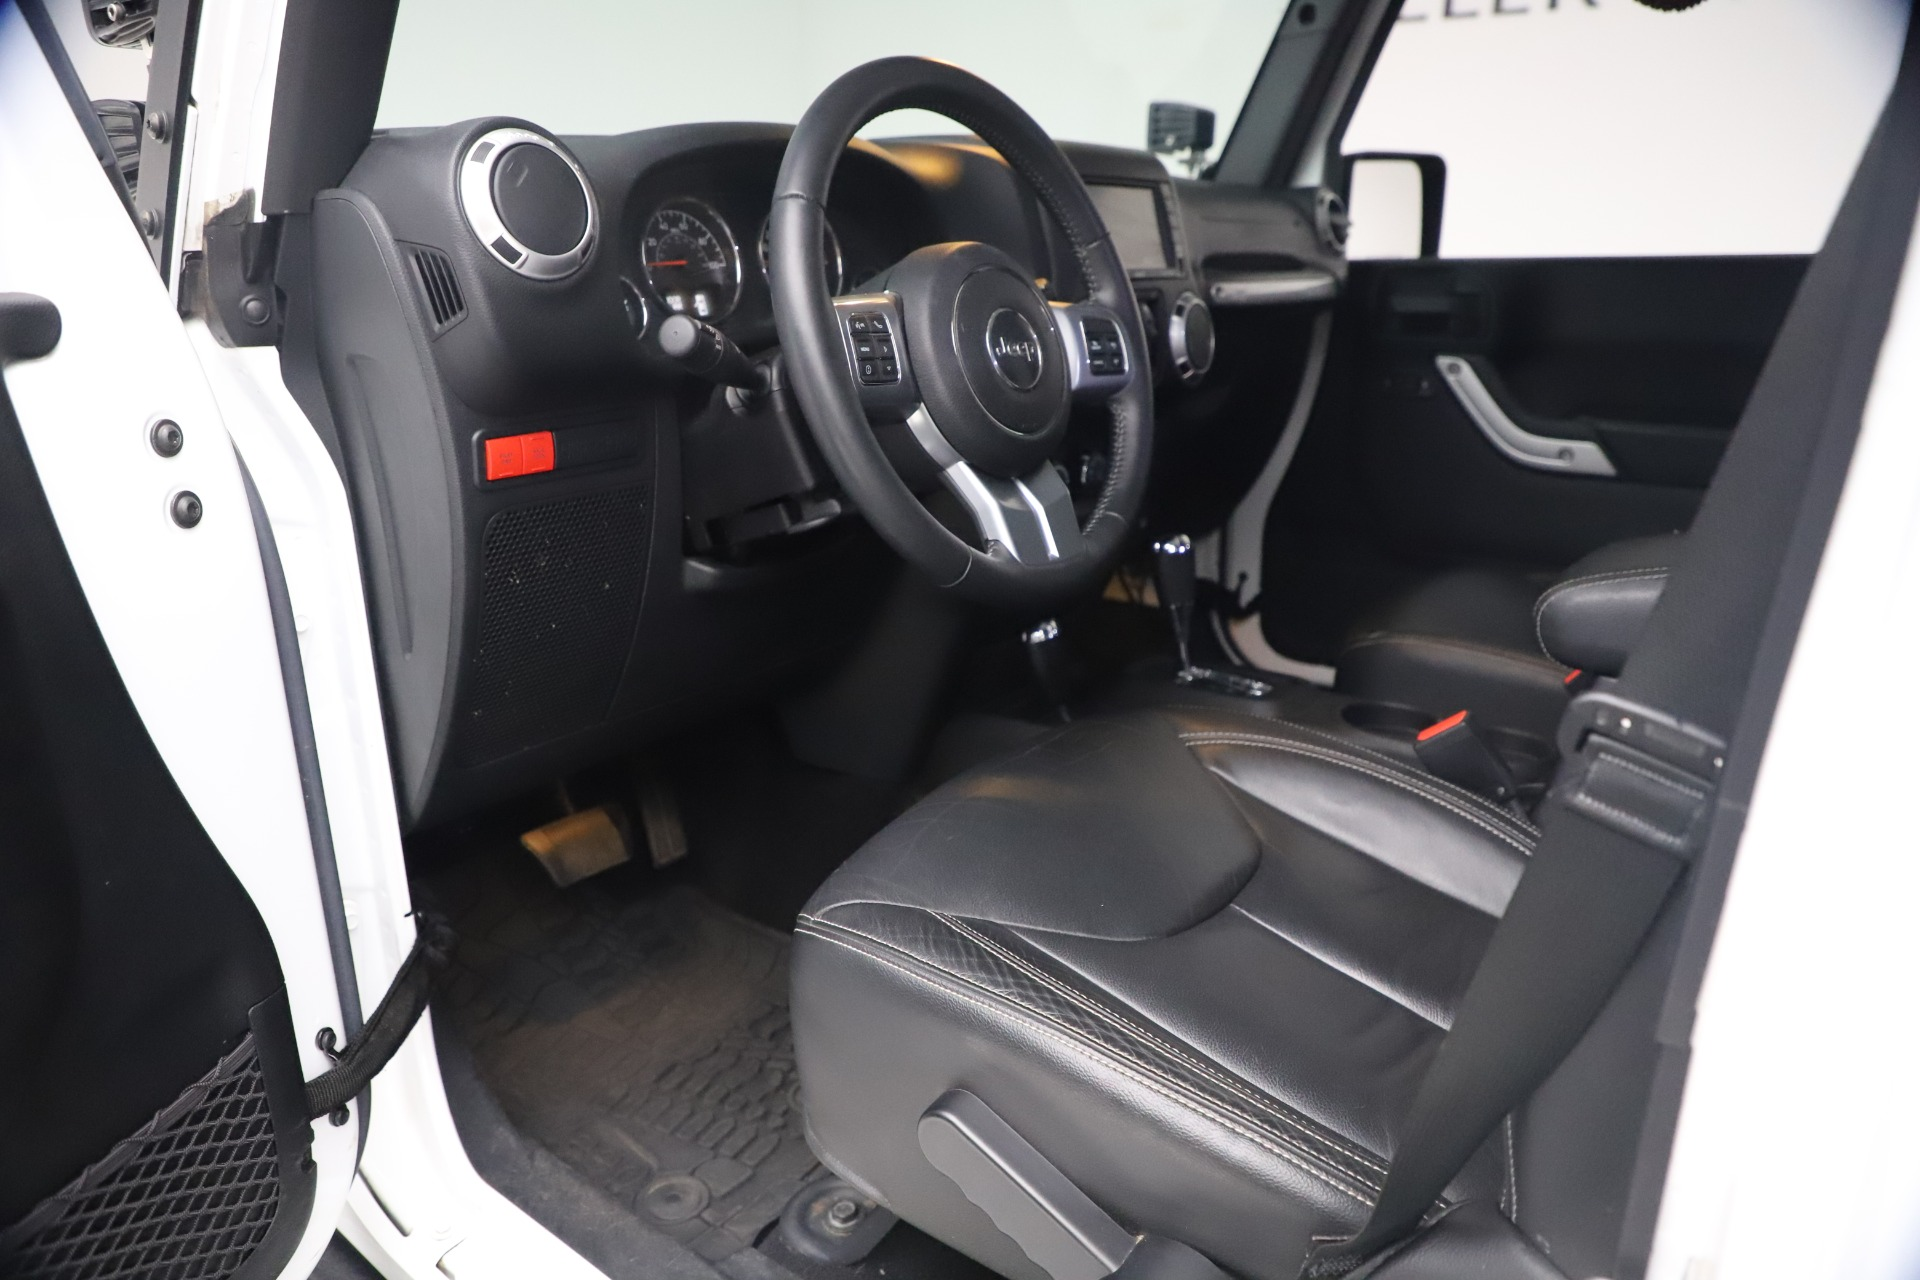 Used 2015 Jeep Wrangler Unlimited Rubicon Hard Rock